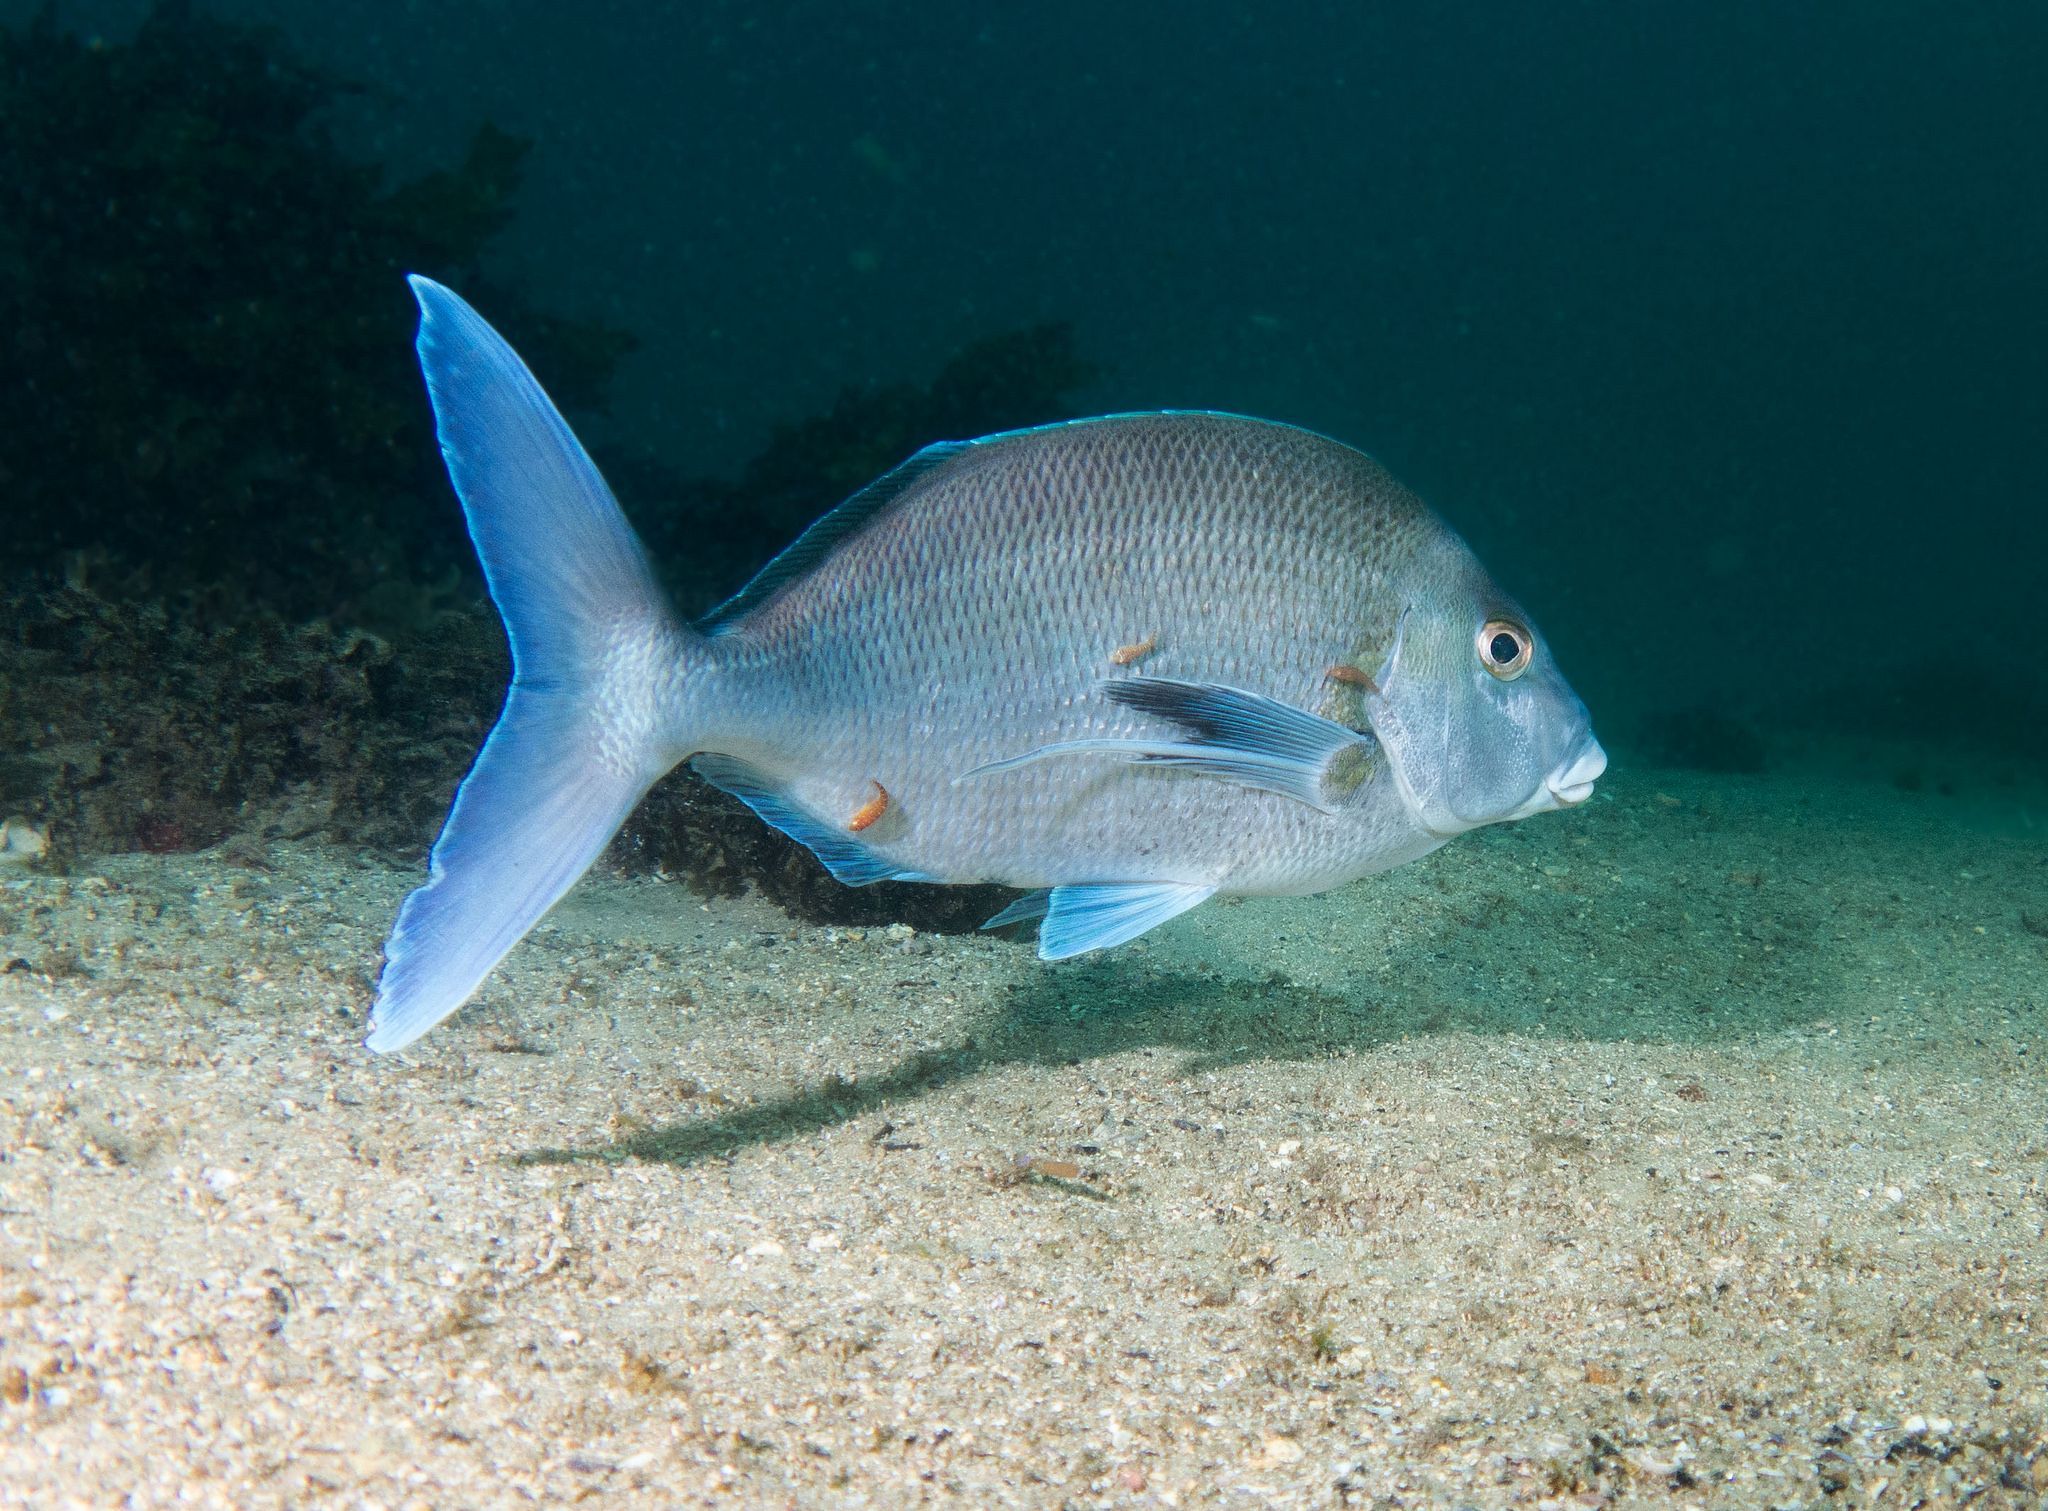 Getting the works - Blue morwong with three cleaners